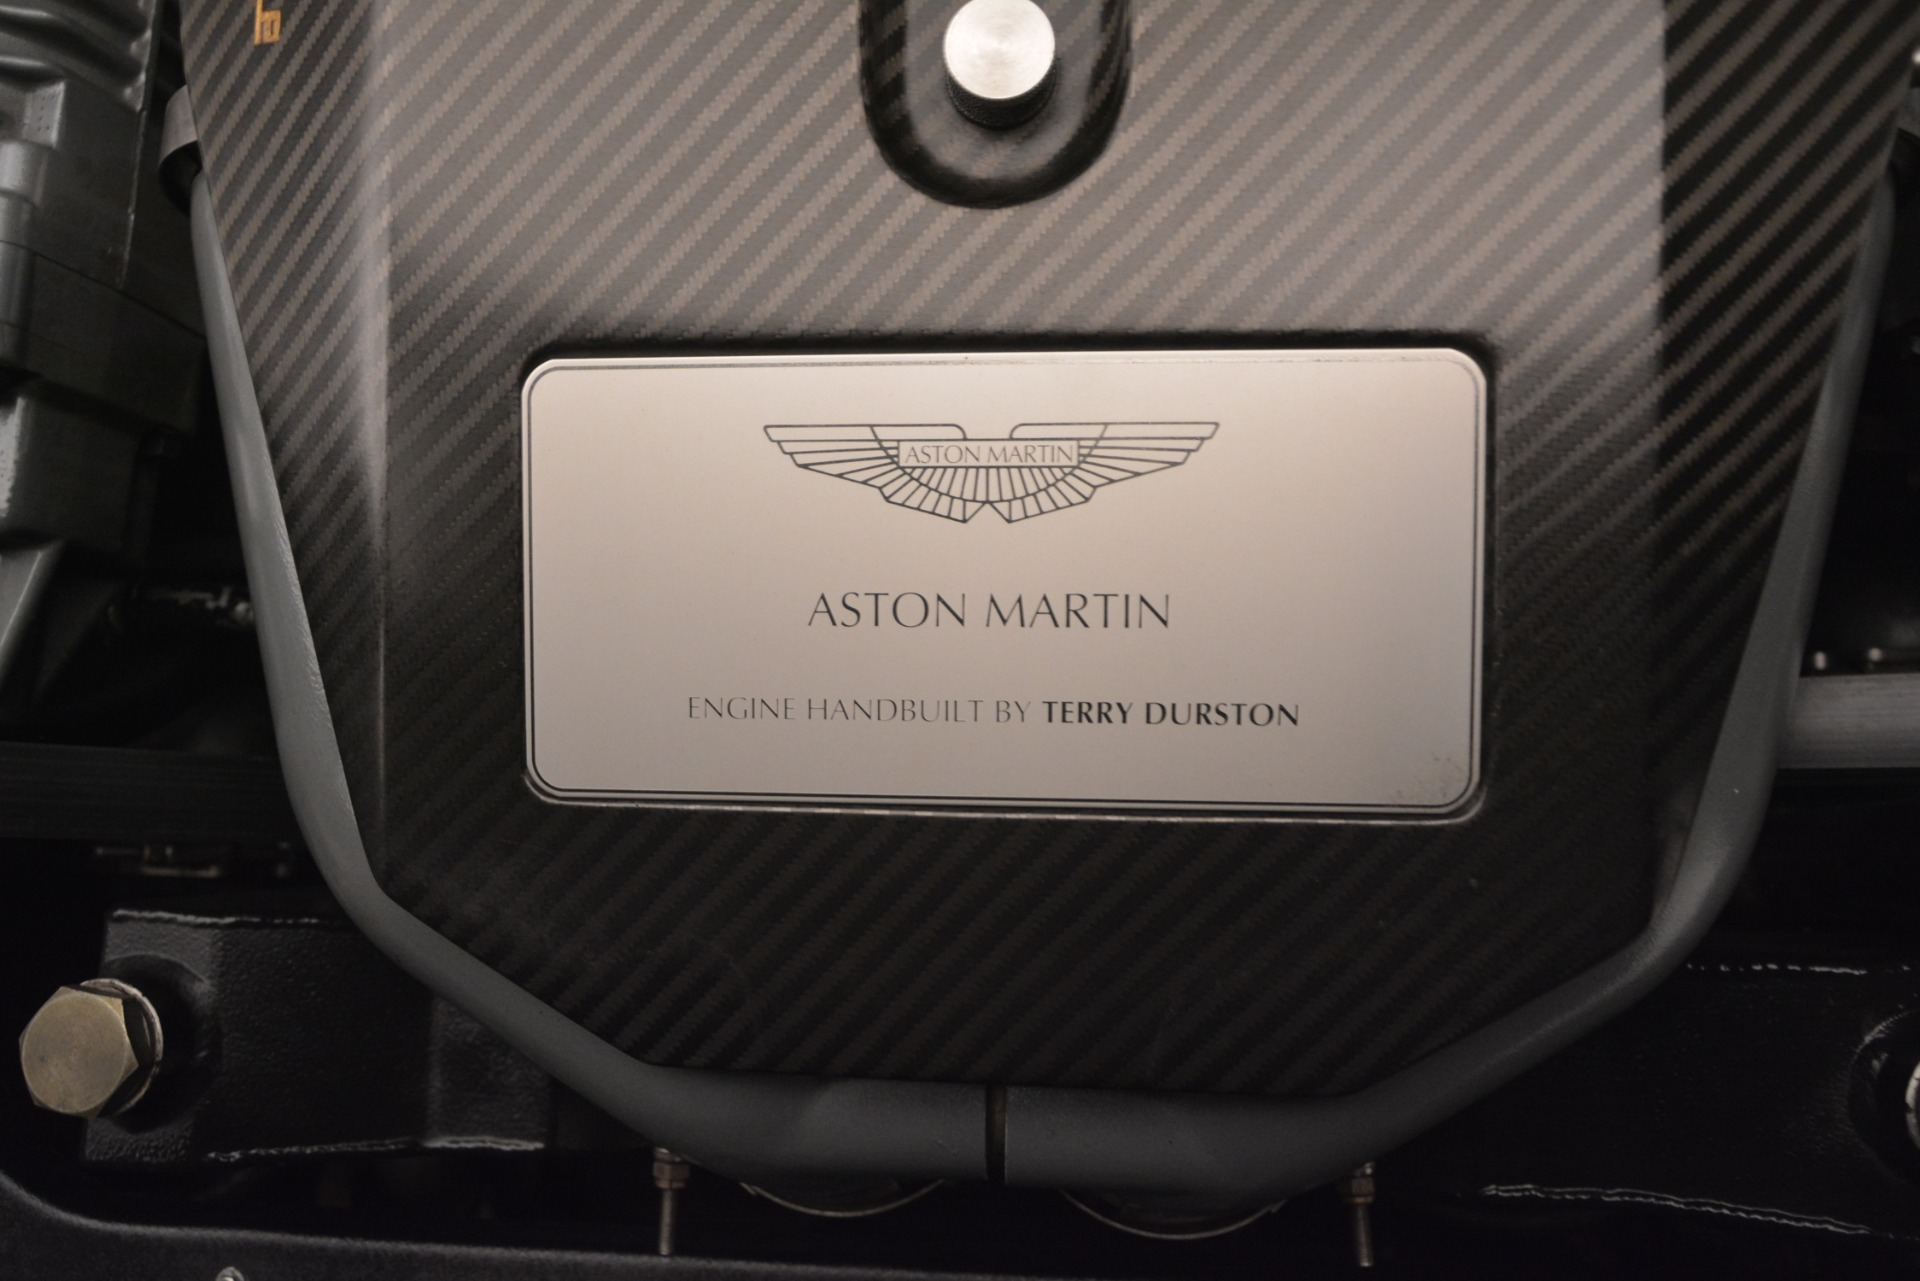 Used 1999 Aston Martin V8 Vantage Le Mans V600 Coupe For Sale In Westport, CT 2789_p31